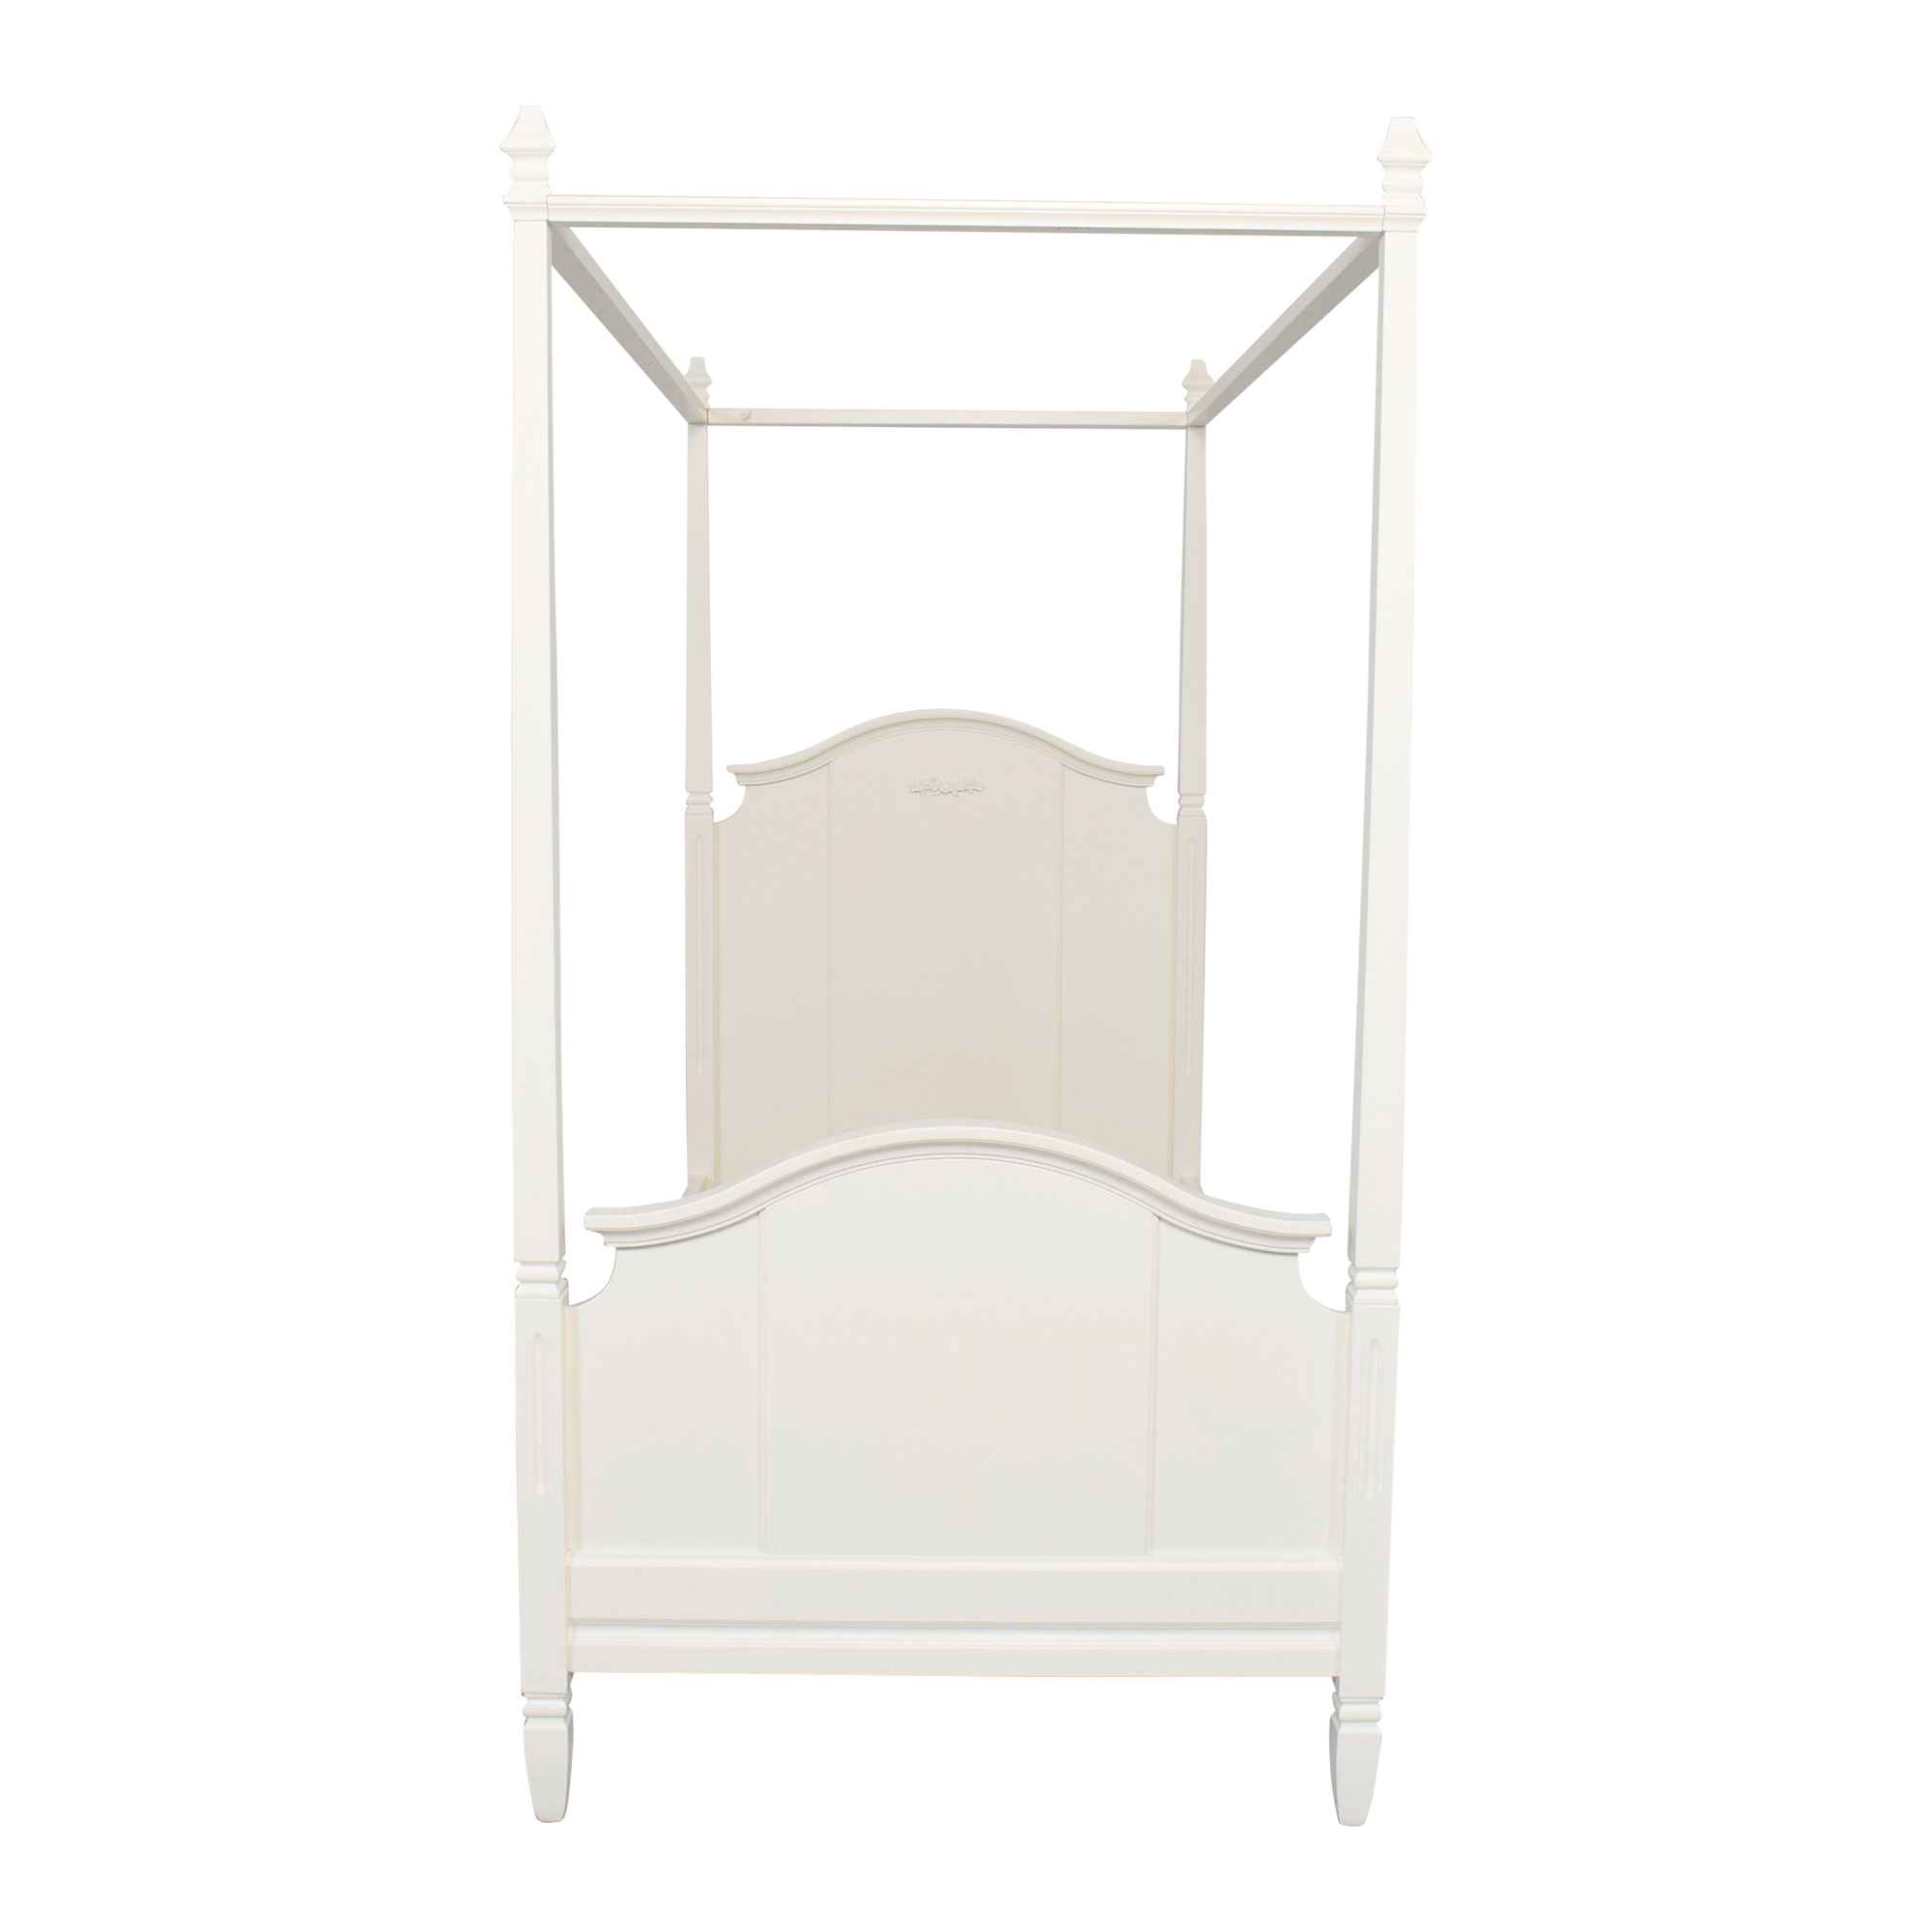 Pottery Barn Kids Pottery Barn Kids Madeline Canopy Twin Bed for sale